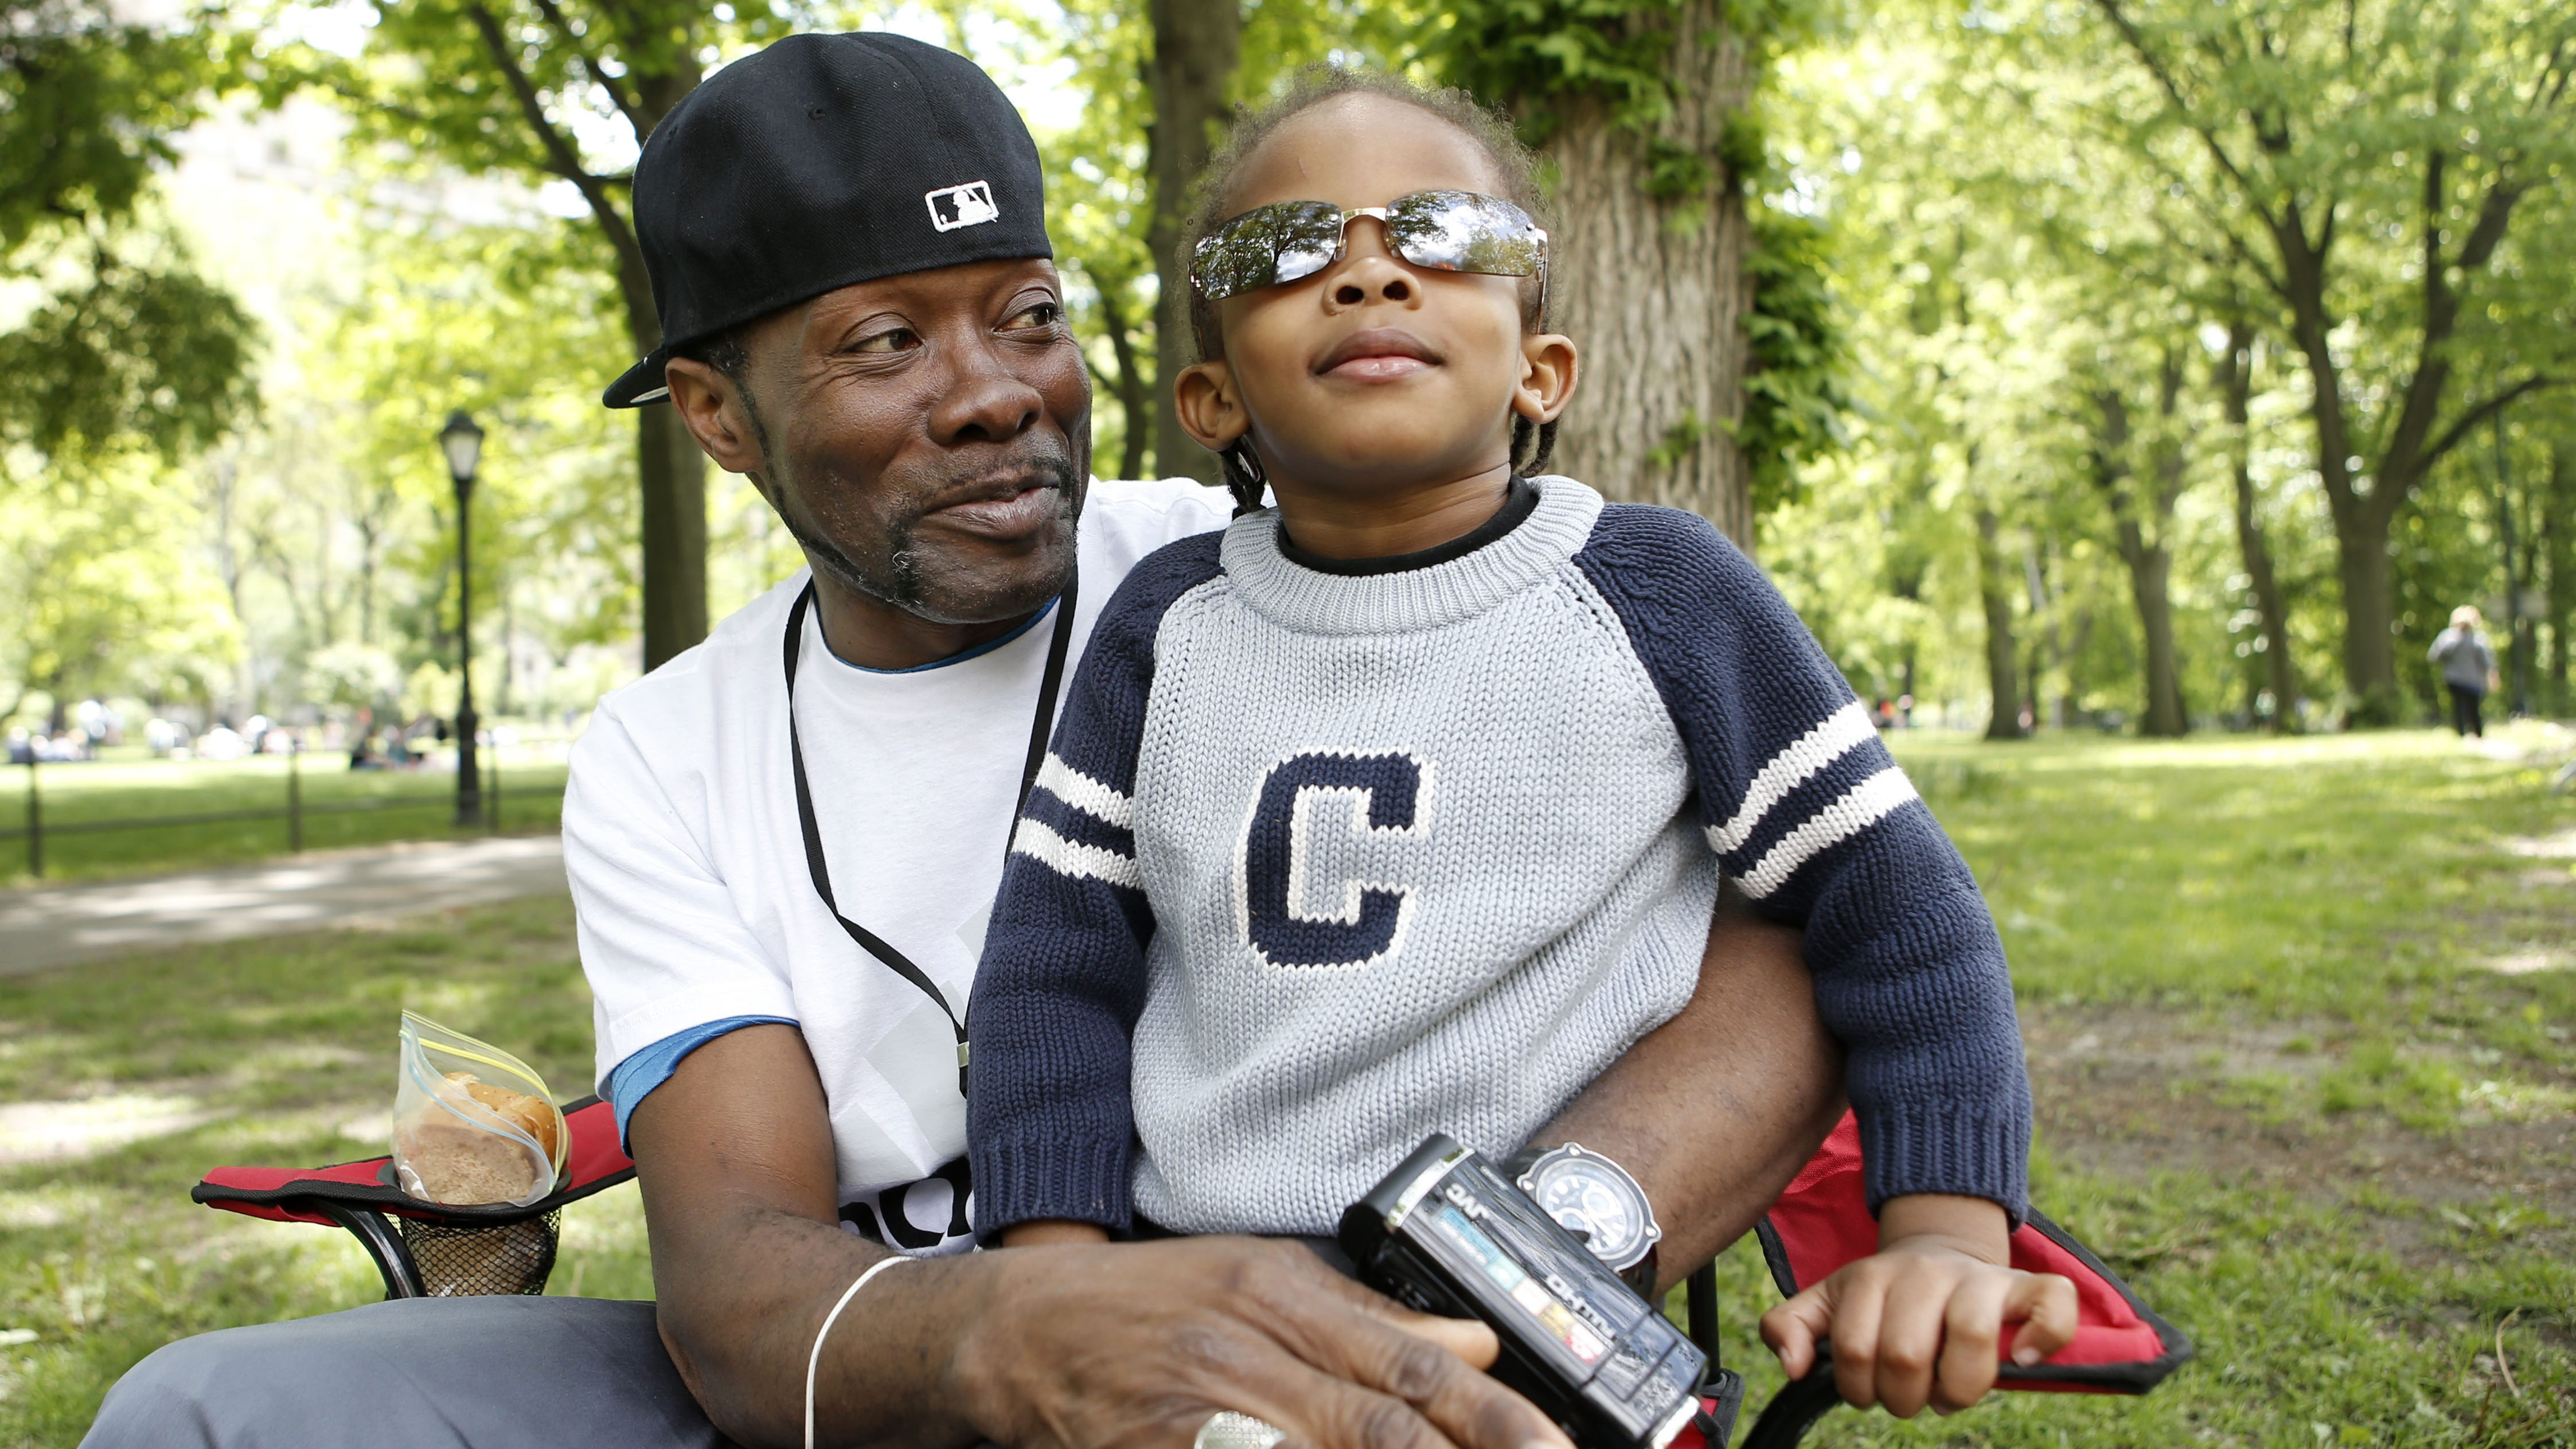 """FILE - In this May 18, 2014 photo, Jamez James, 47, of the Brooklyn borough of New York, holds his son, Melchi'Tzdec, during an outing in New York's Central Park. Before becoming a father, James said, """"I was a single guy, living the life, well, so I thought."""" James describes fatherhood as opening a door, and """"little did I know, as I chose to go through, my entire life changed... That's where I met my son, on the other side of the door."""" (AP Photo/Kathy Willens)"""